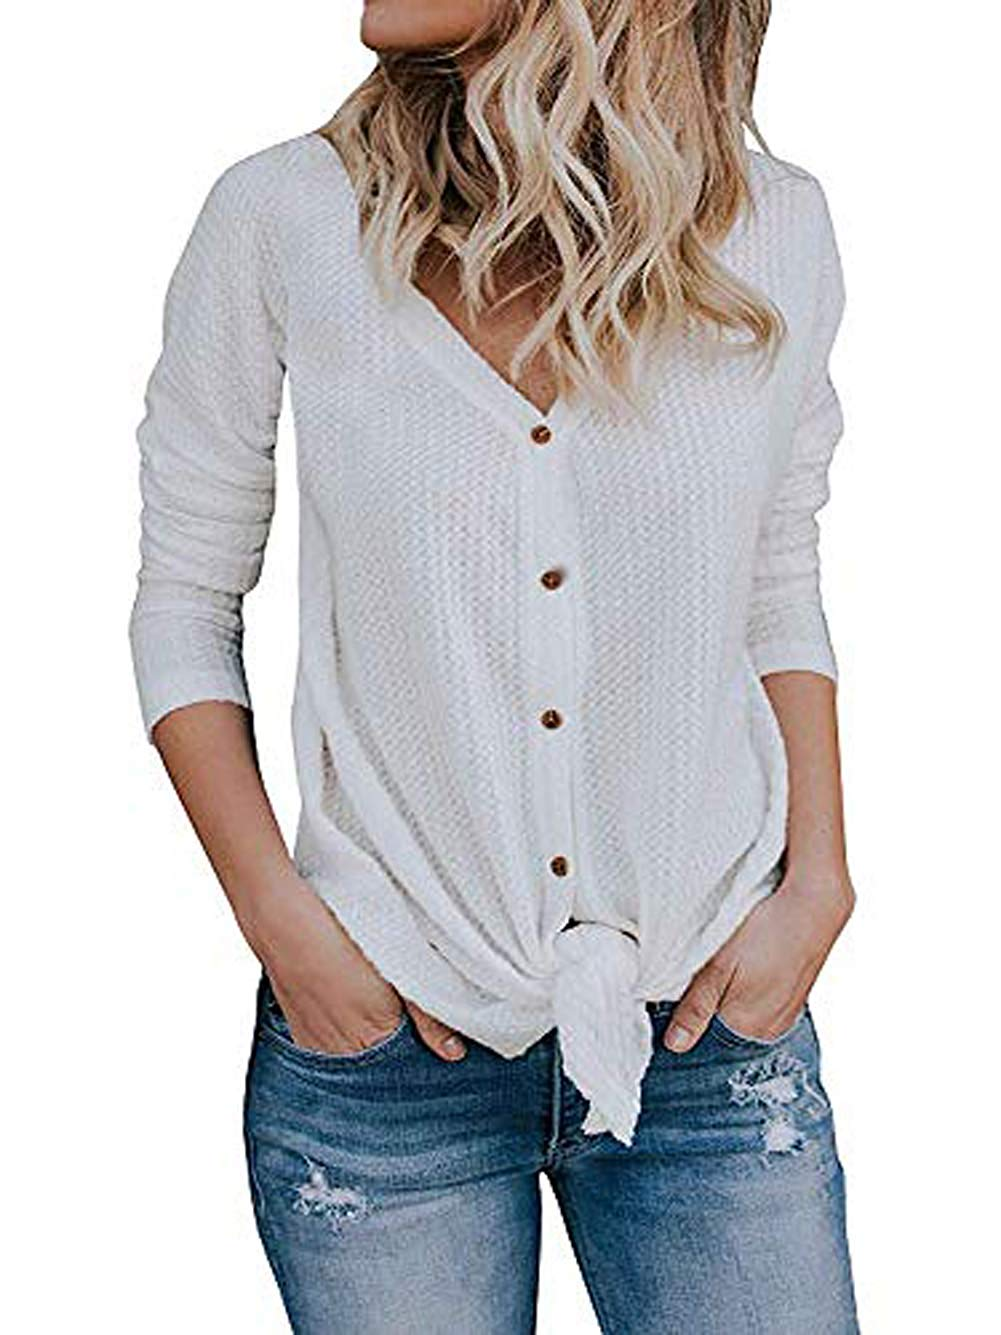 f6a4e055ae4 Get Quotations · Macr&Steve/Esgent Women's Casual Button Down Knit Pullover  Sweaters Shirts Tunic Blouse Knitwear Tops